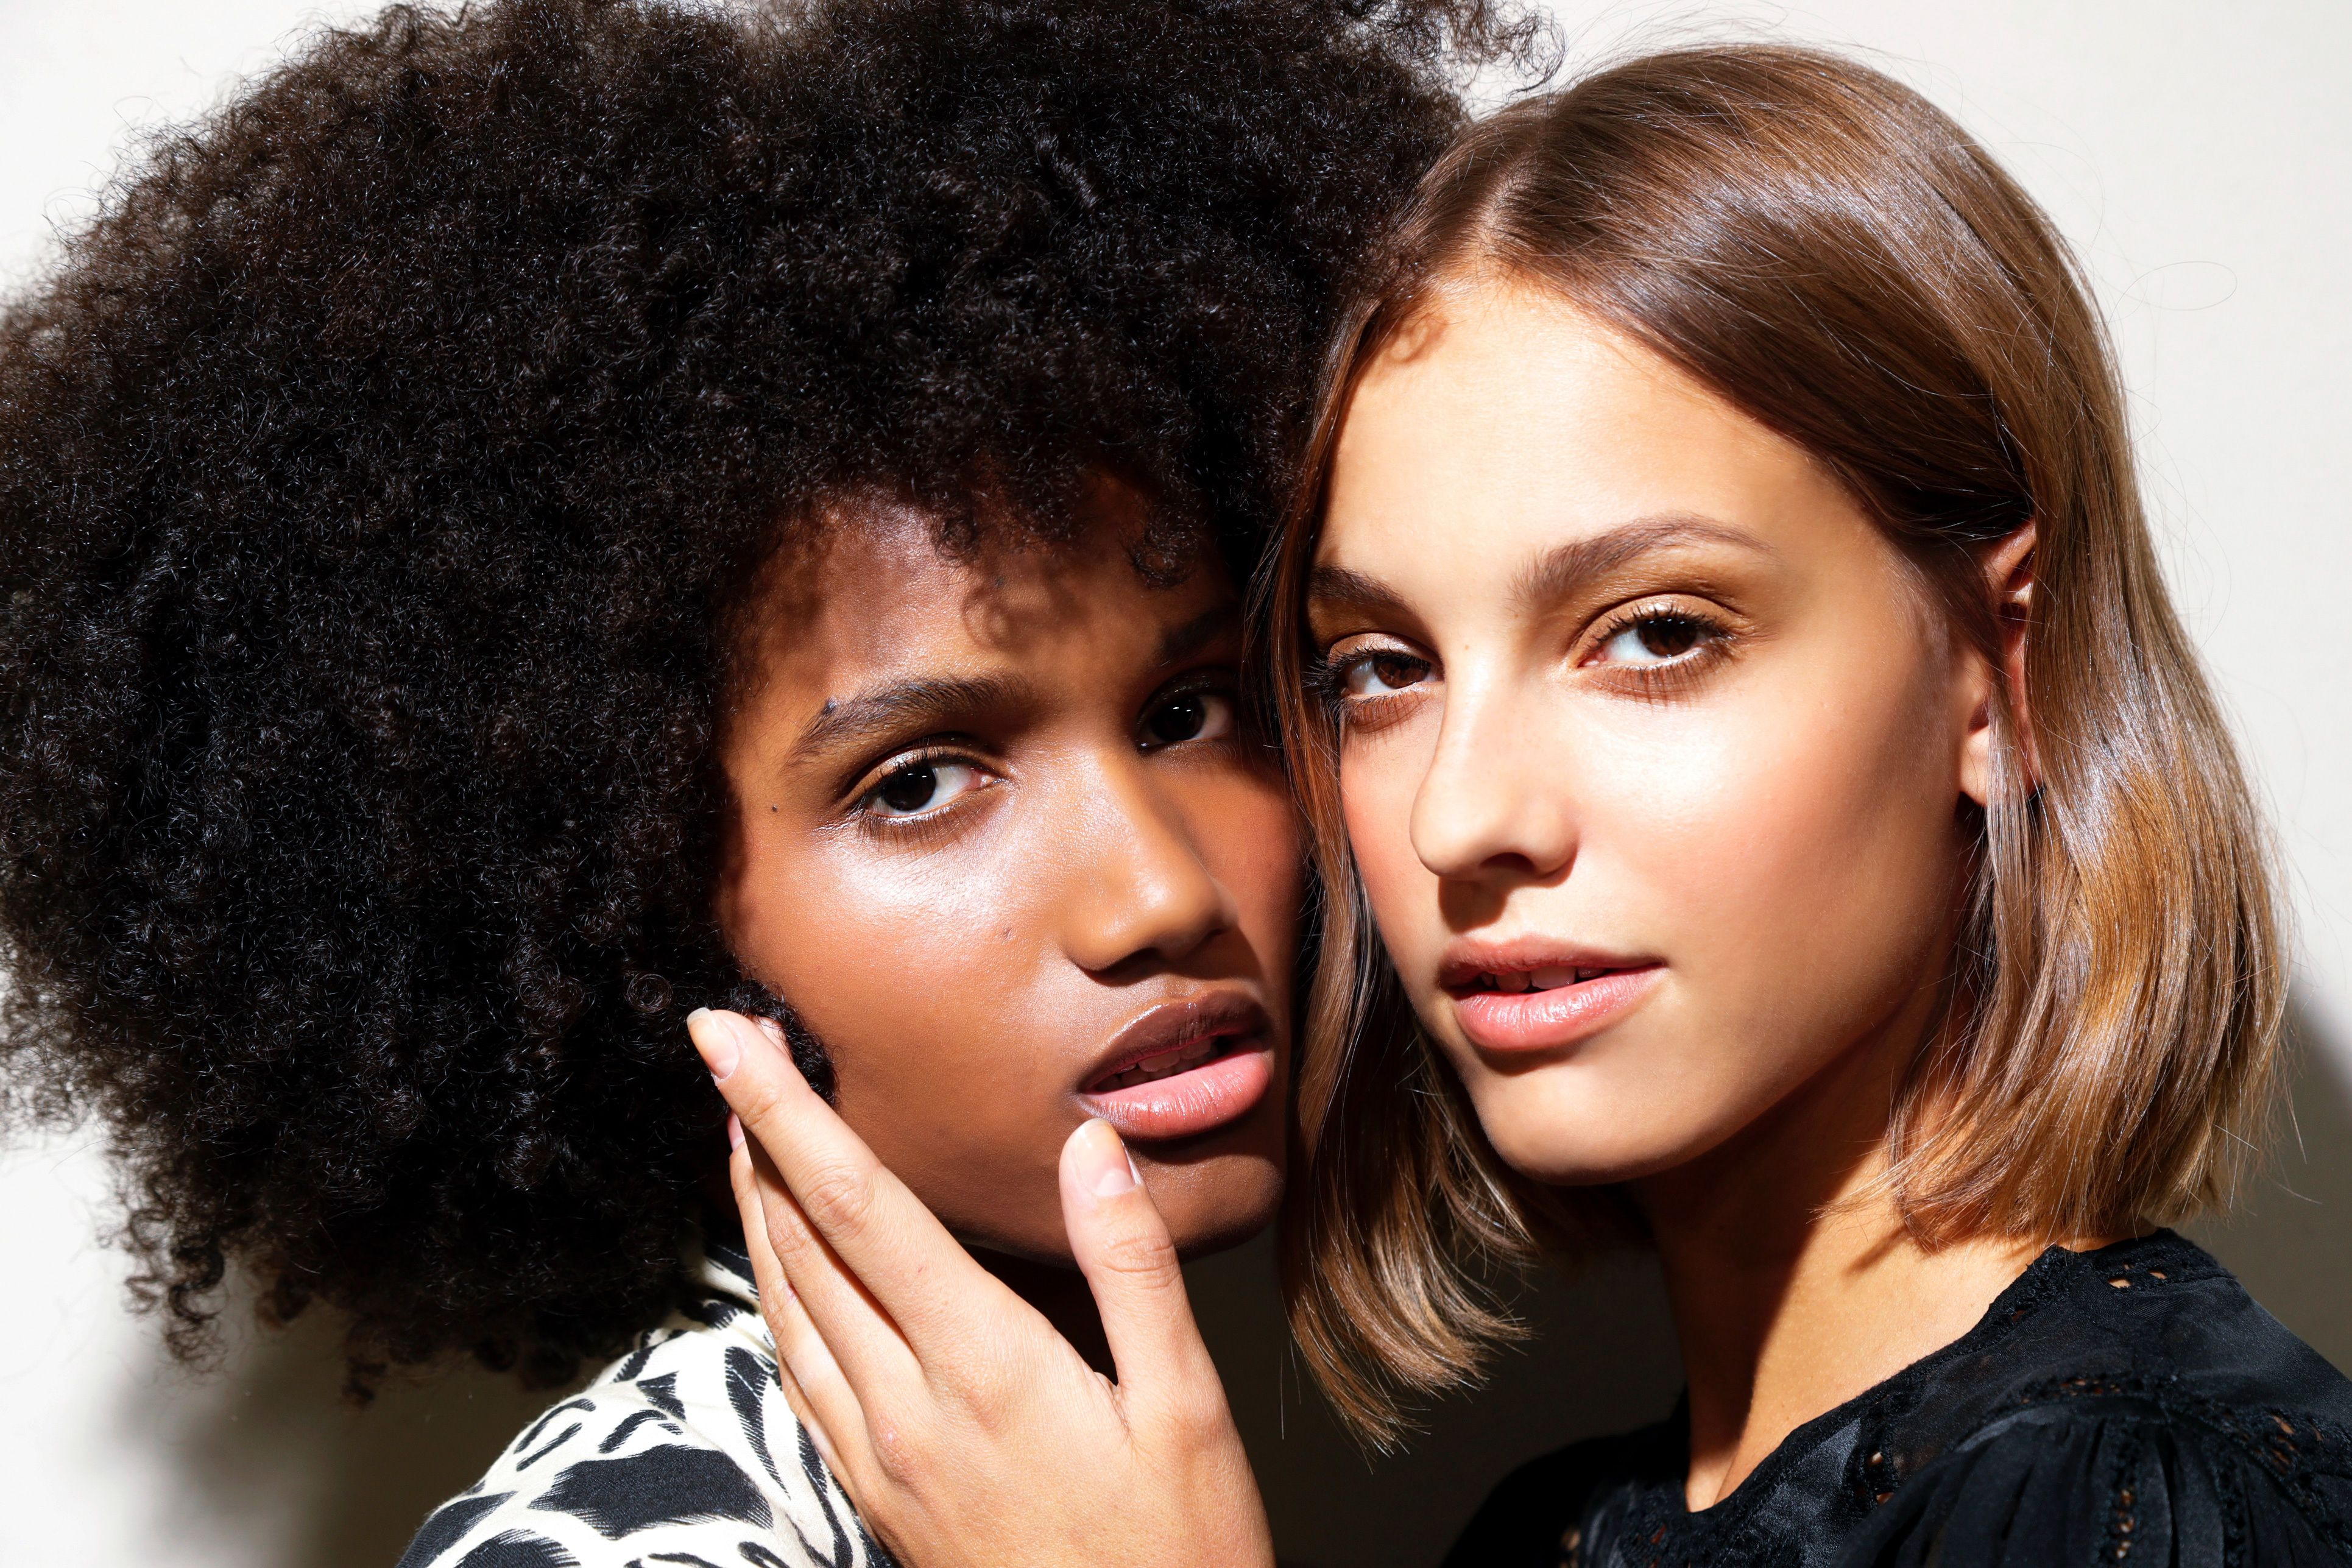 Best Shampoo And Conditioner 2020 Editors Review Shampoo And Conditioner Brands